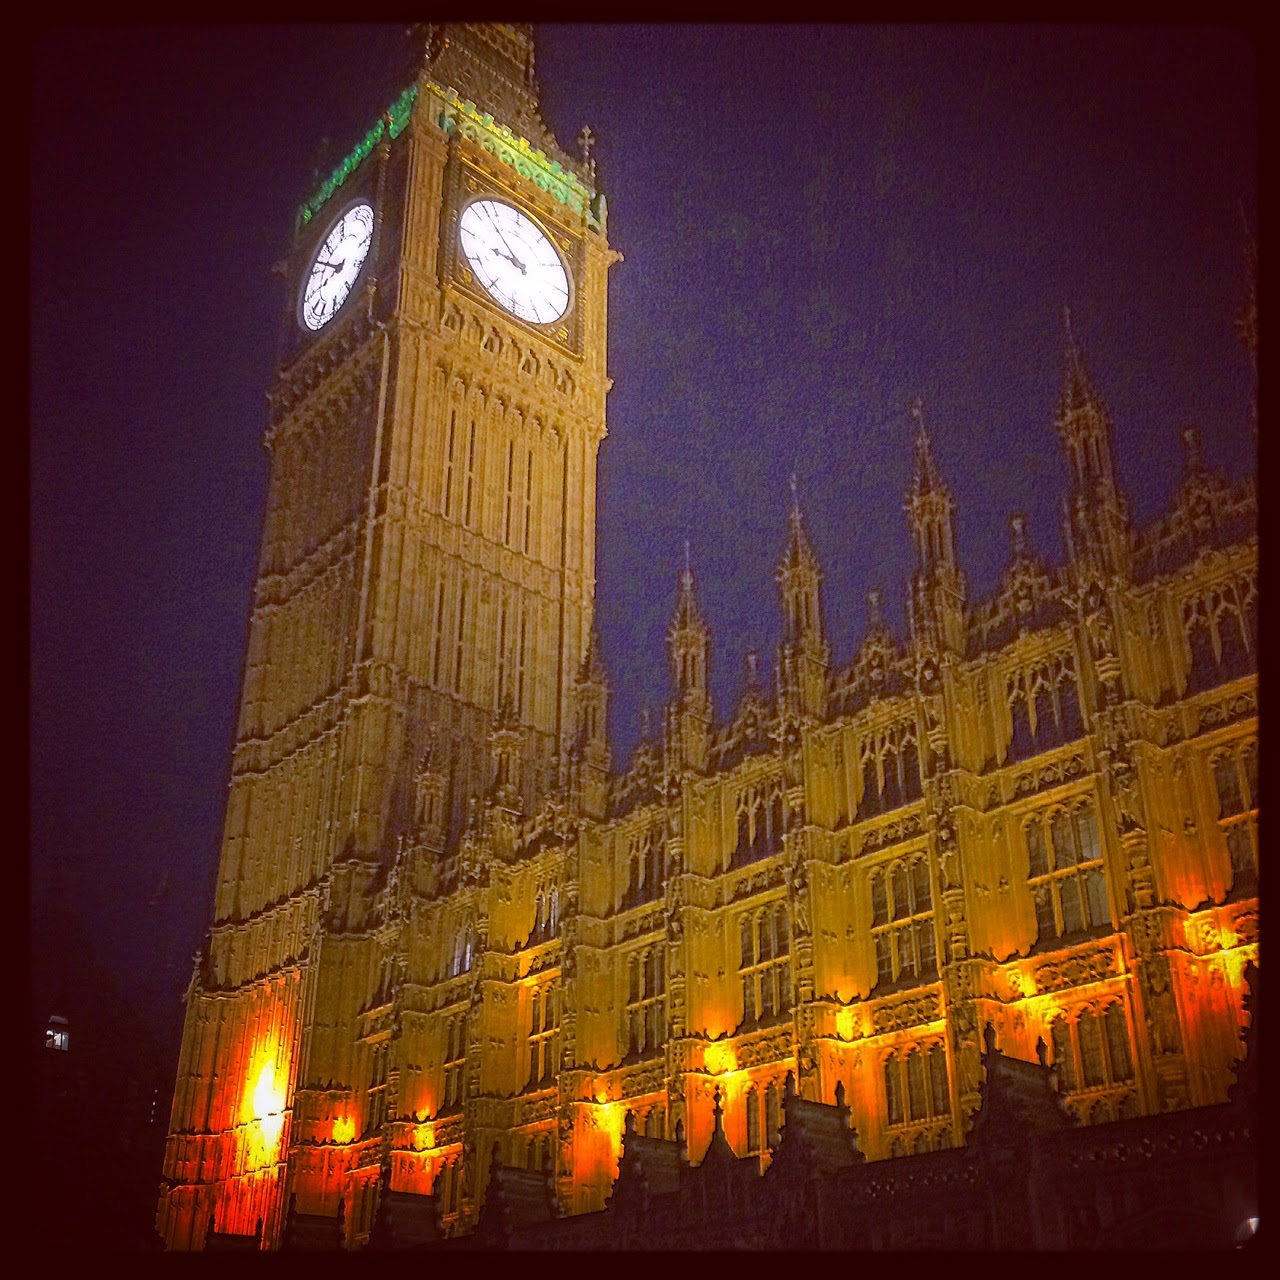 Visual Sound: INSIDE PALACE OF WESTMINSTER